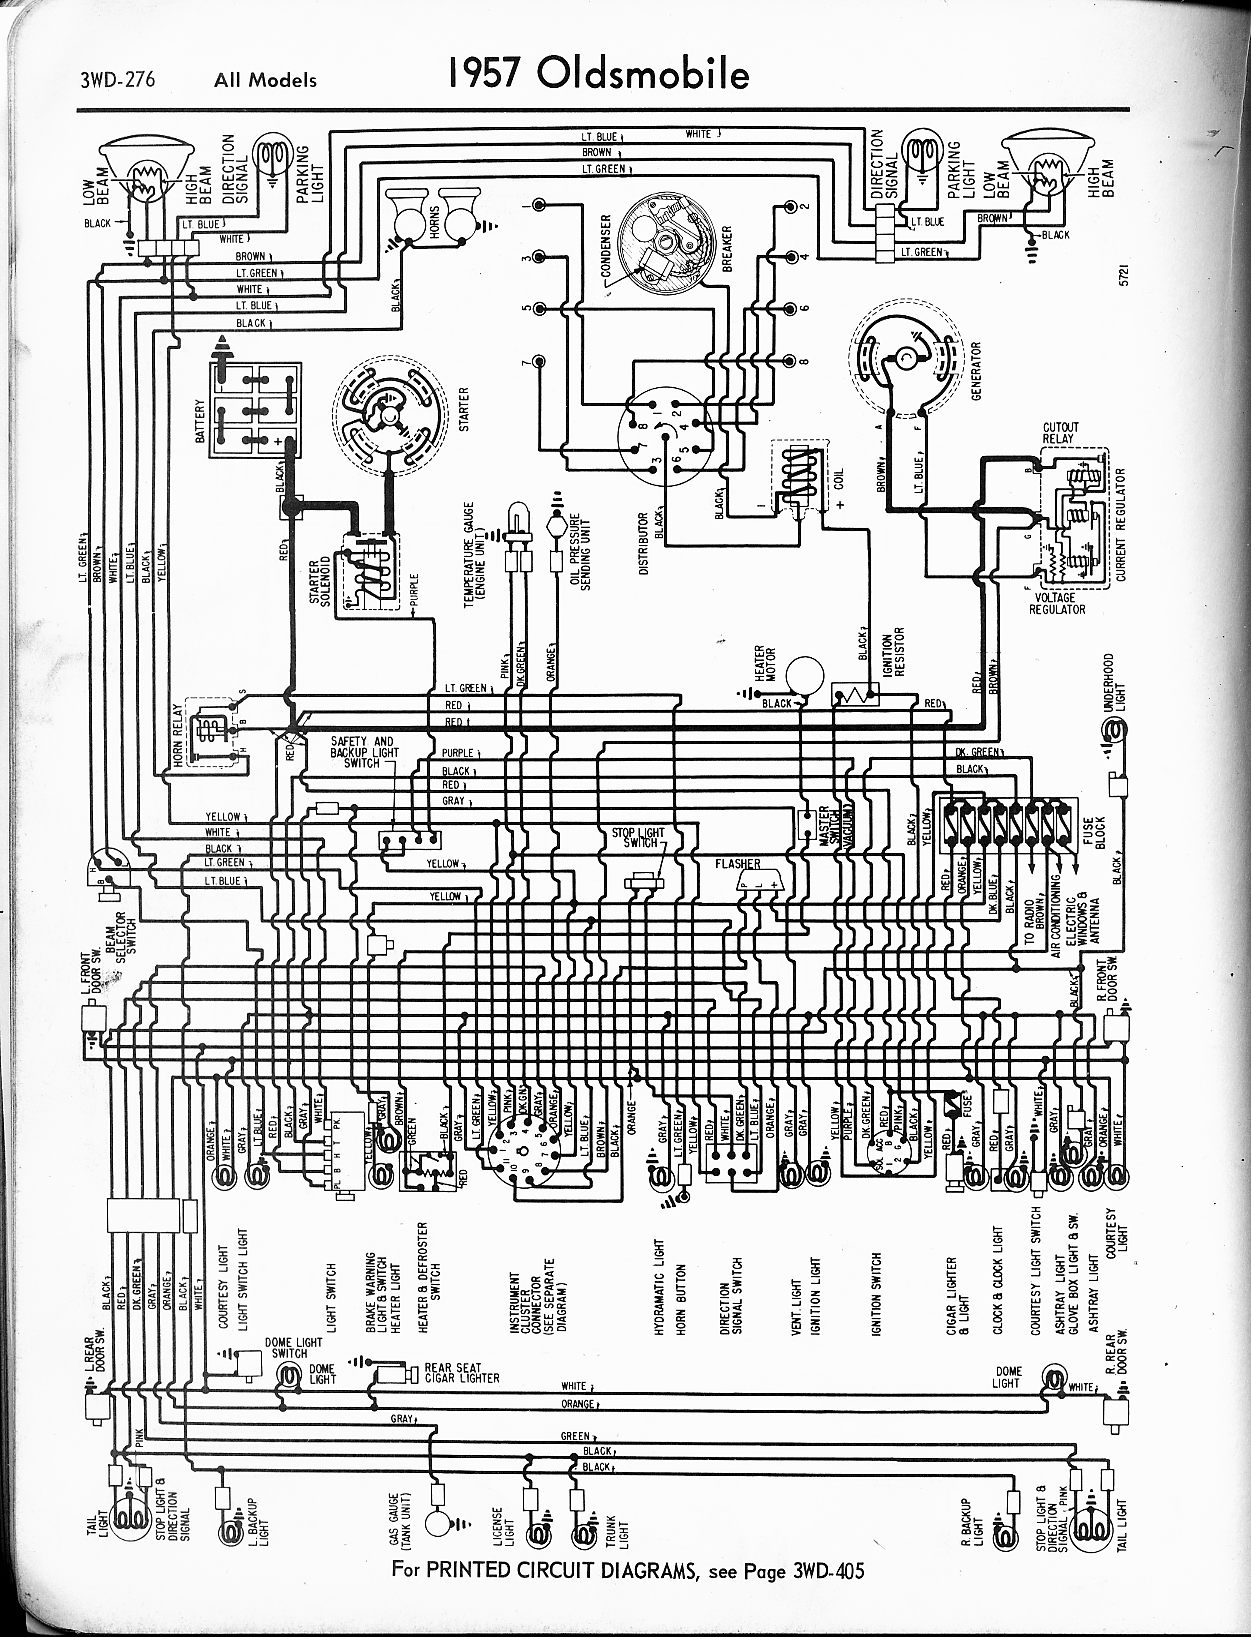 oldsmobile wiring diagrams the old car manual project rh oldcarmanualproject com Pontiac Grand Prix Wiring Diagrams 2000 Pontiac Montana Wiring-Diagram